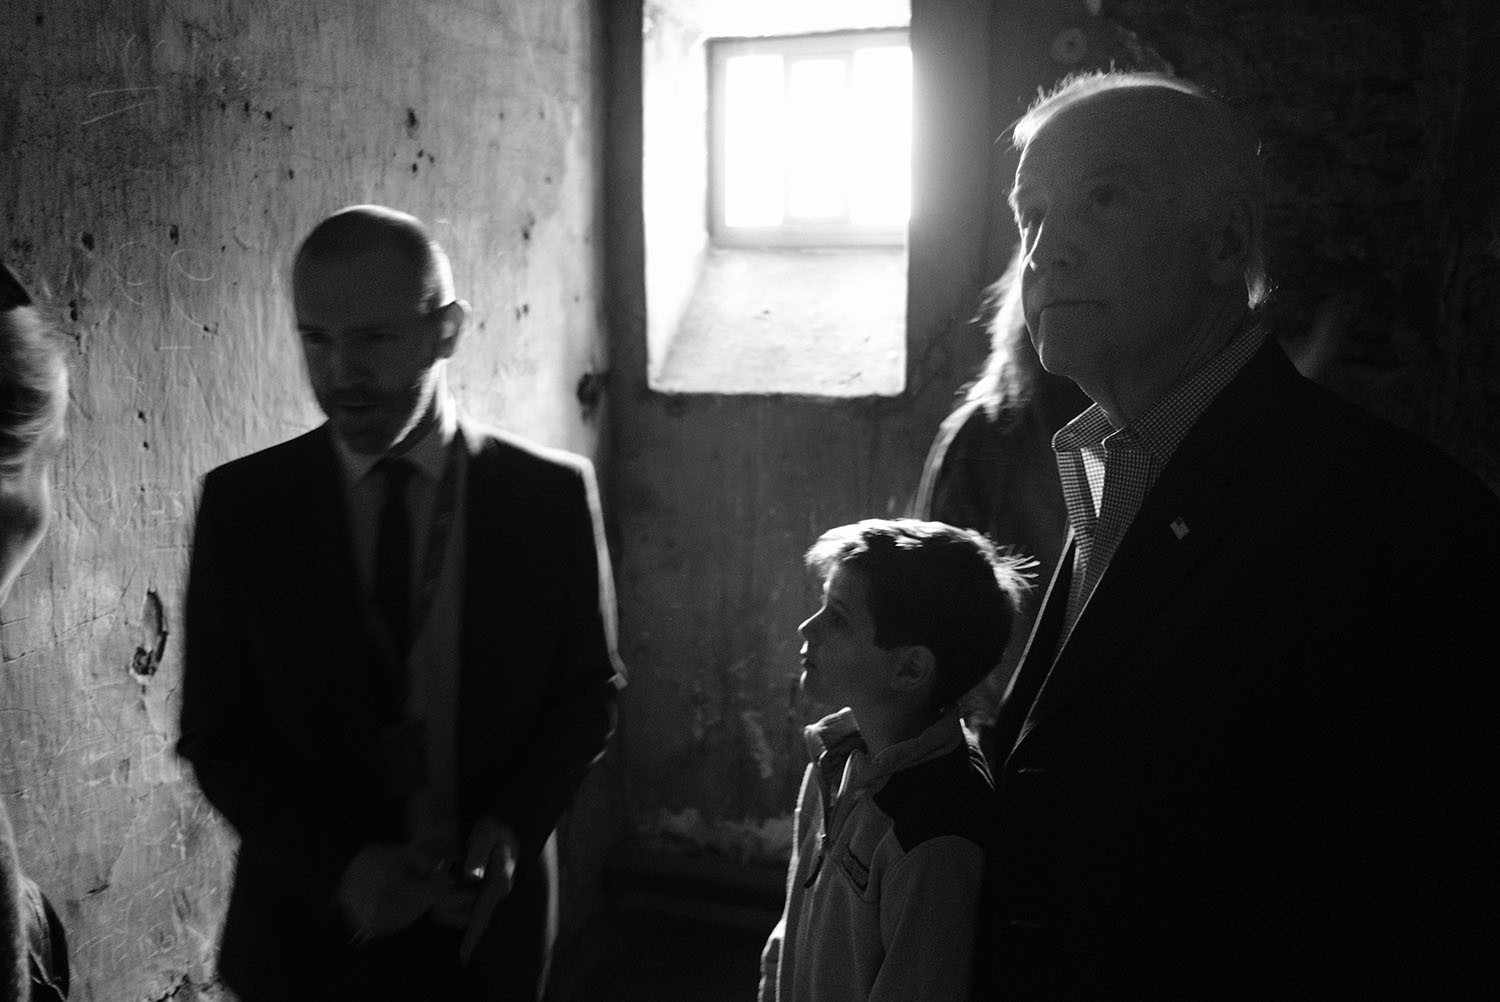 Vice President Joe Biden and grandson Hunter Biden tour one of the cells in Kilmainham Prison, where many of those who participated in the Easter Rising in 1916 were held, in Dublin, Ireland, June 23, 2016. (Official White House Photo by David Lienemann)